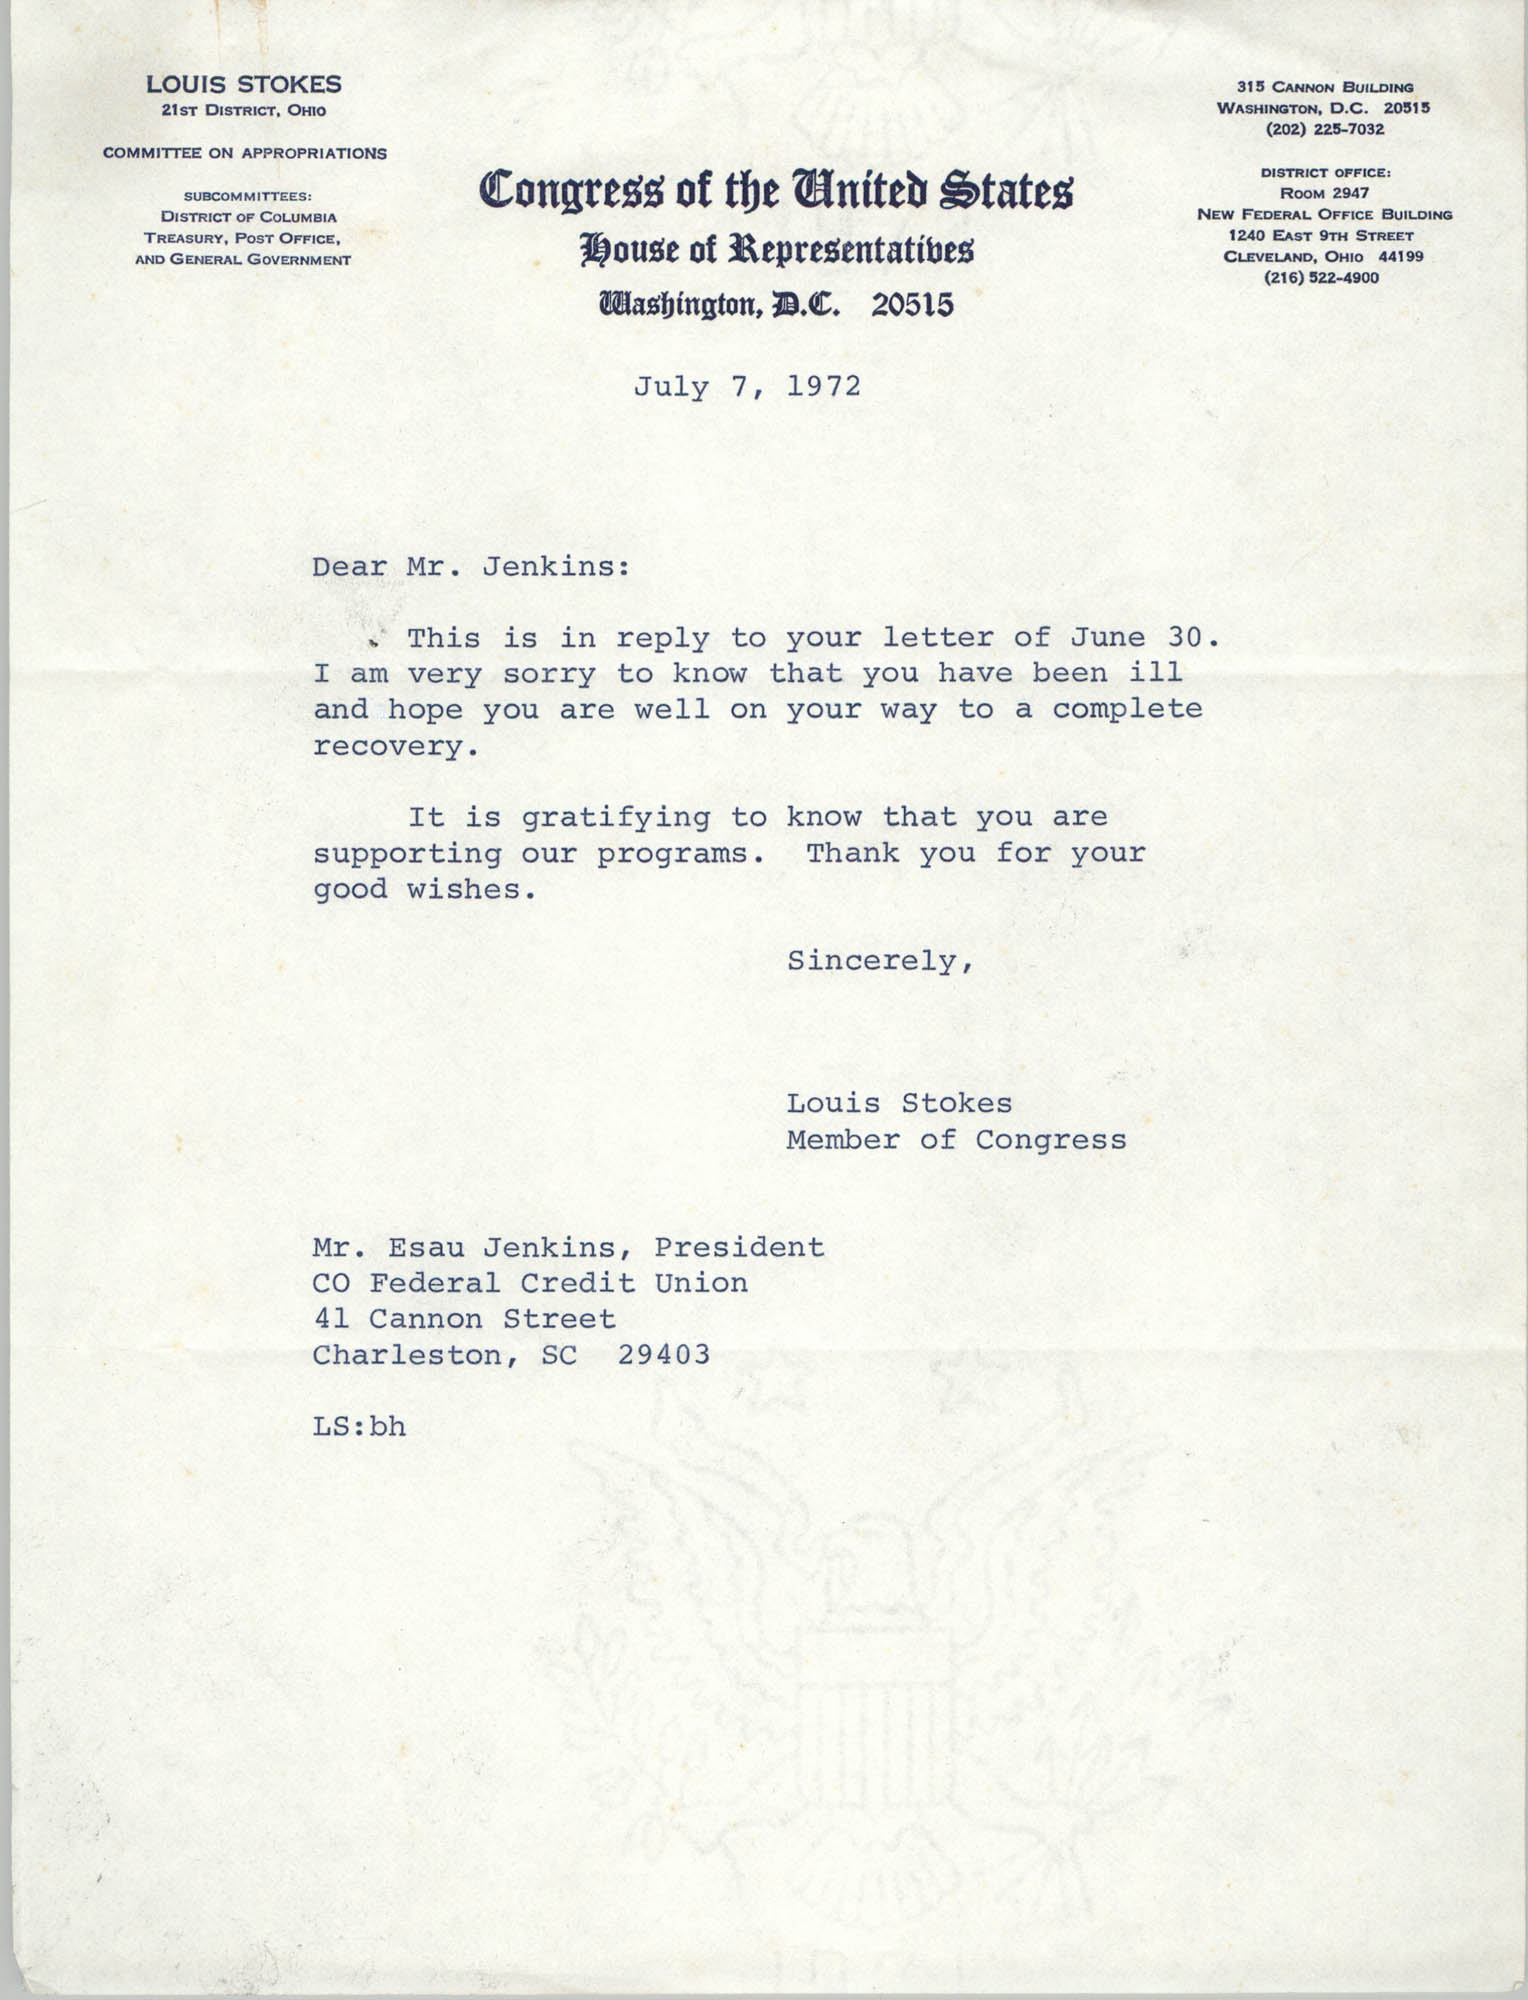 Letter from Louis Stokes to Esau Jenkins, July 7, 1972